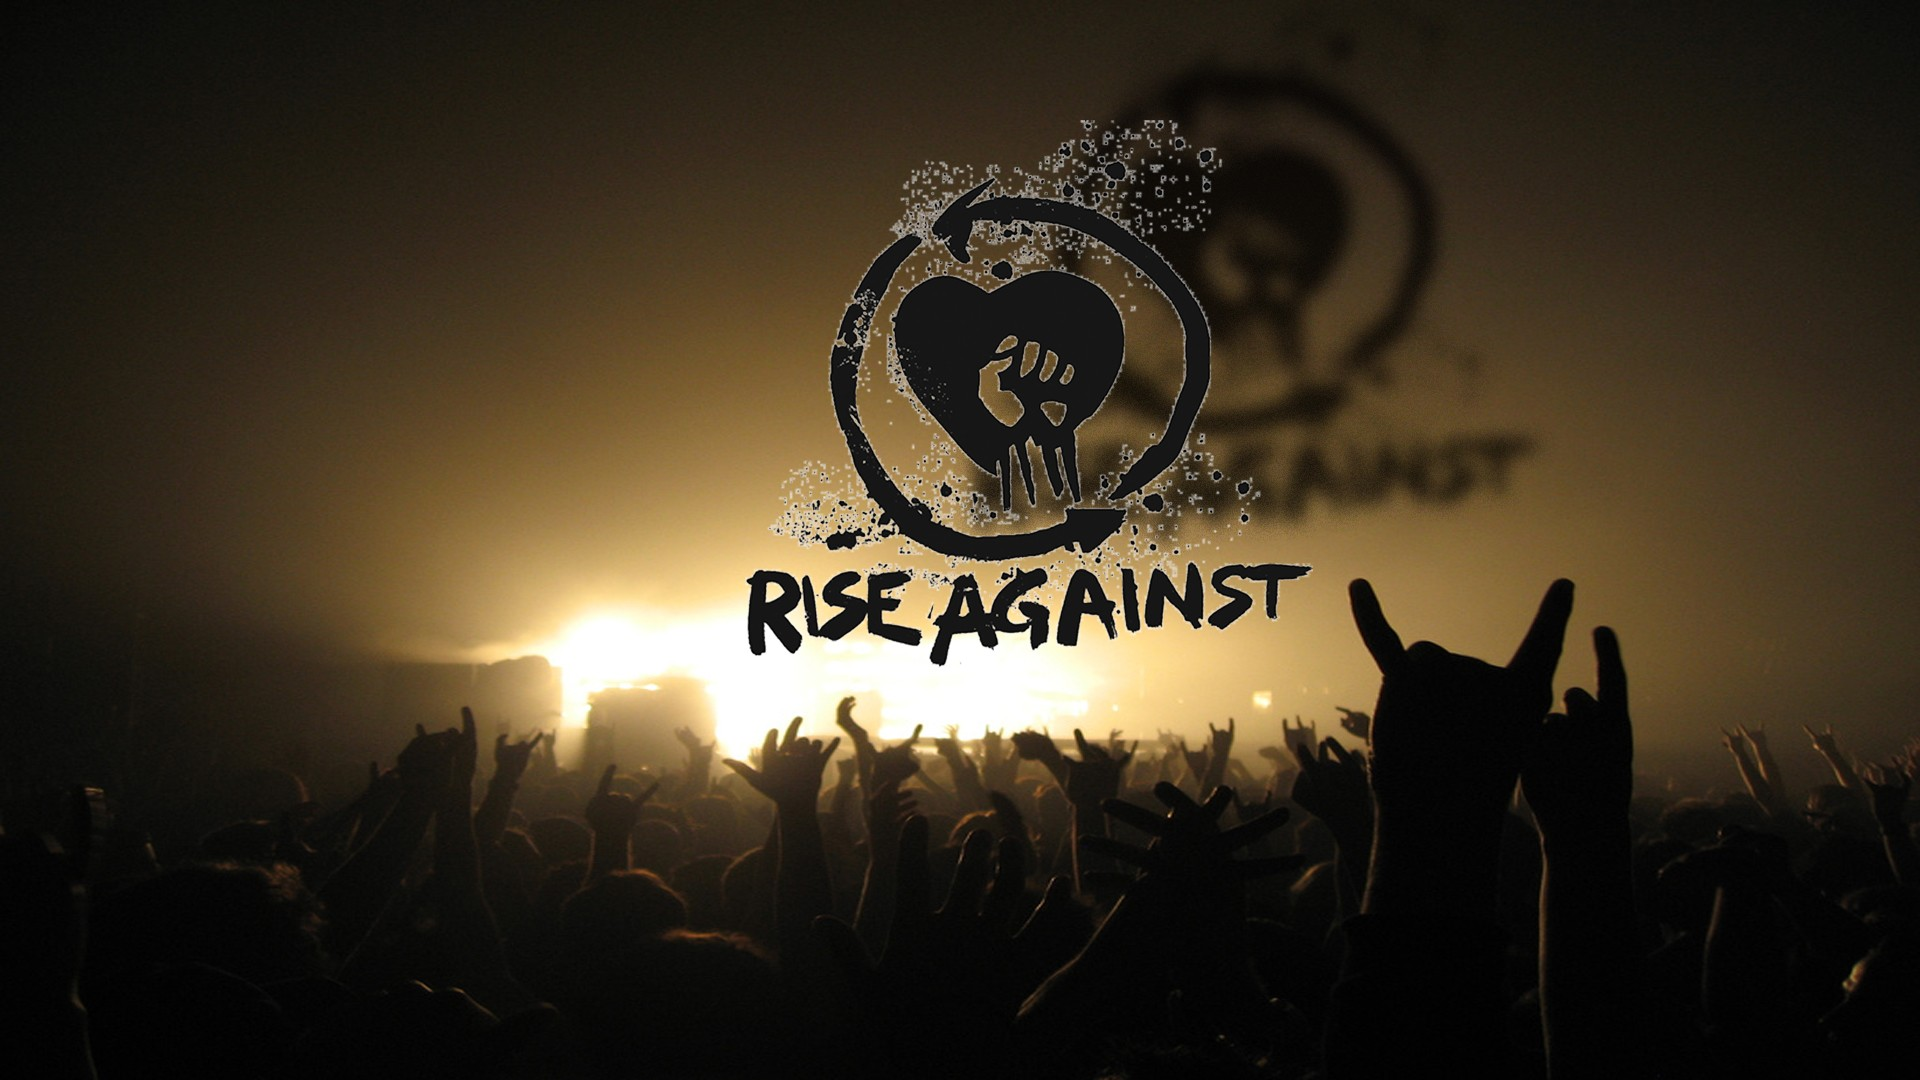 Swedish House Mafia Hd Wallpapers 9 Rise Against Hd Wallpapers Hintergr 252 Nde Wallpaper Abyss